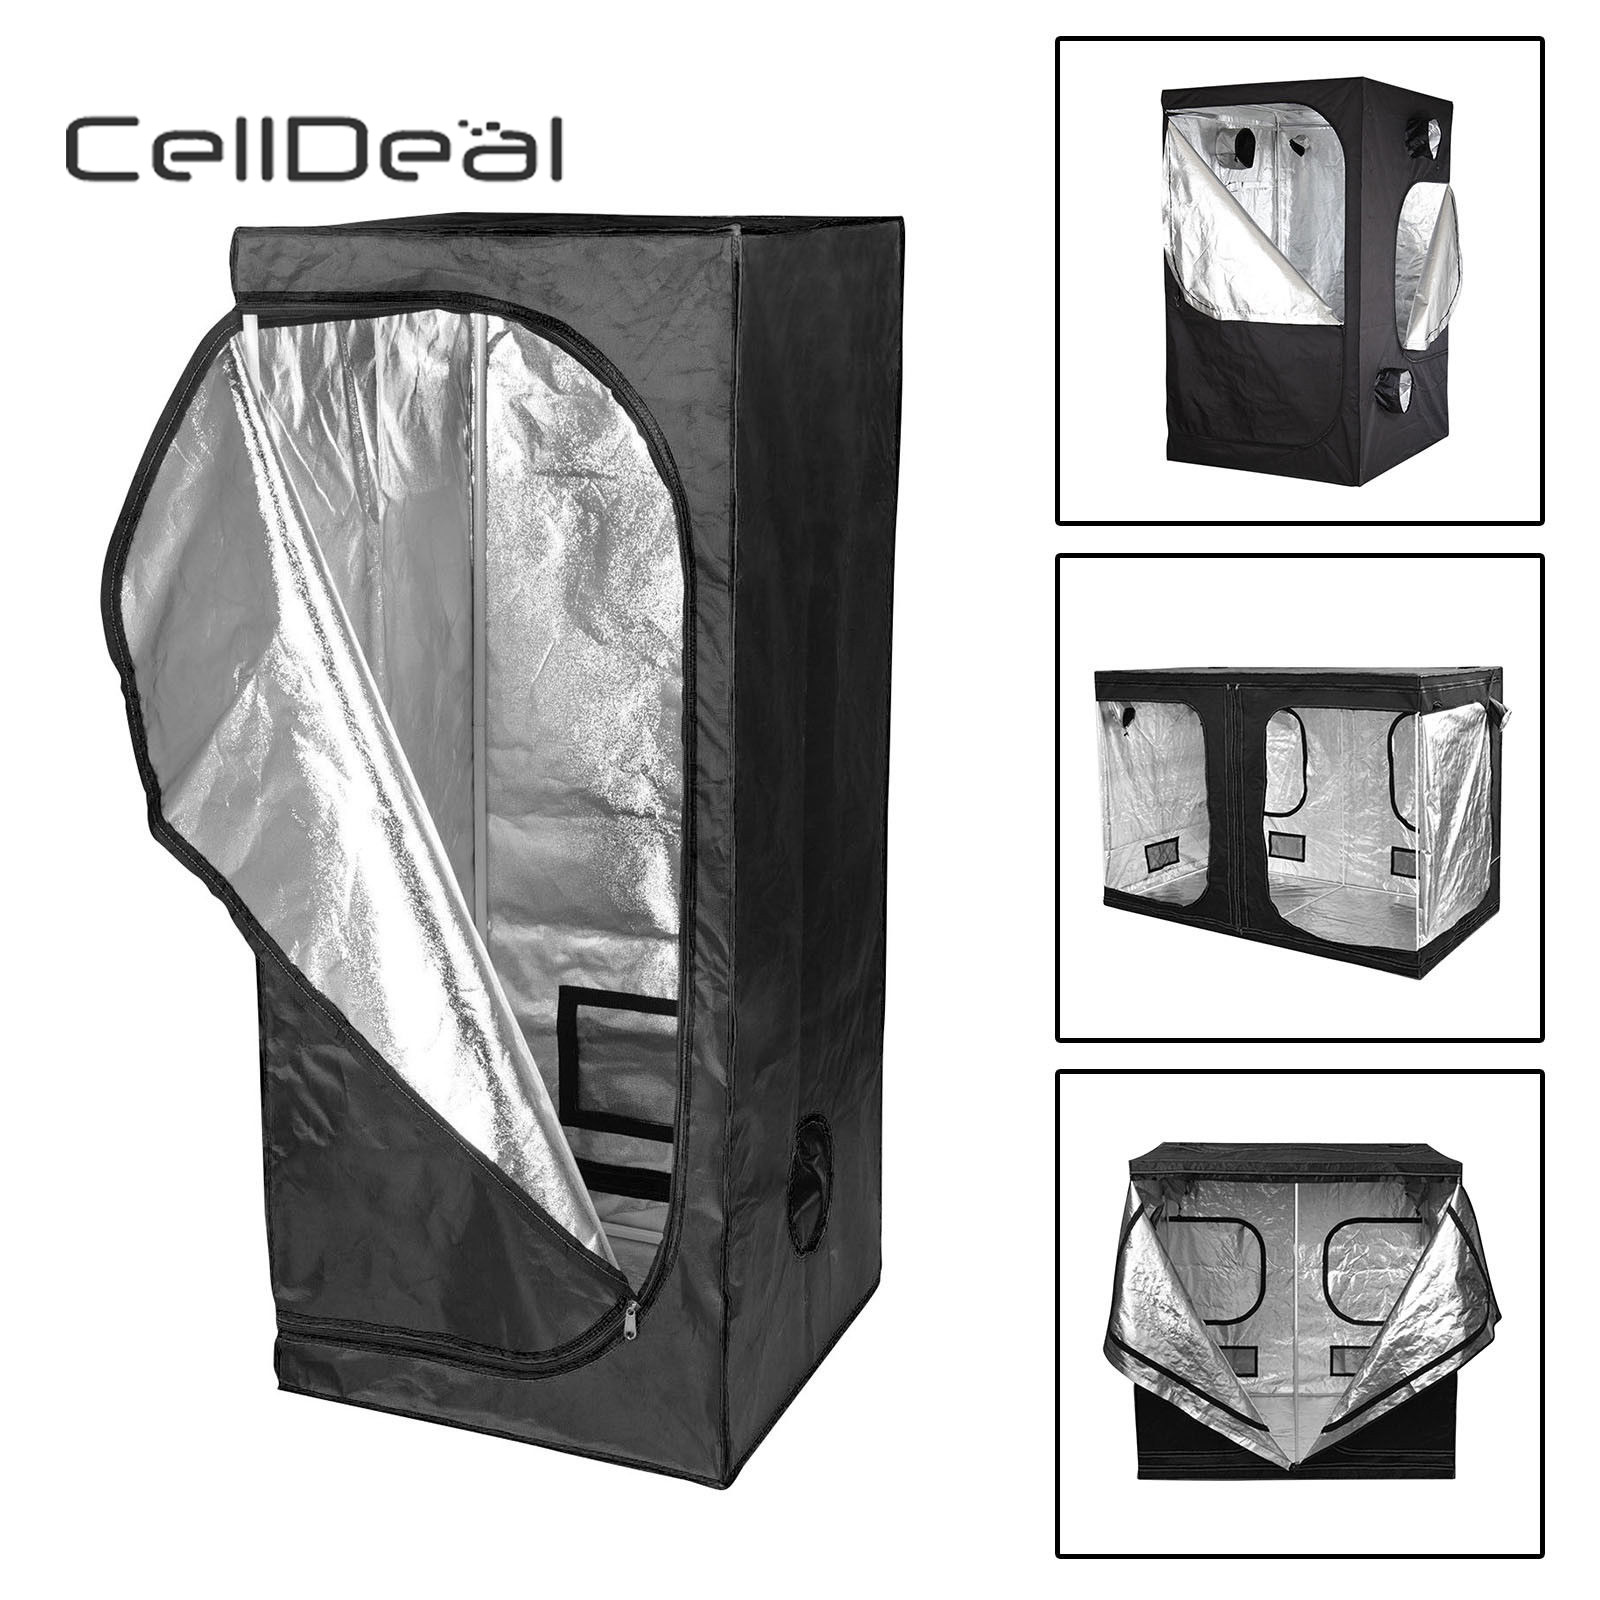 CellDeal Premium Grow Tent Silver Mylar Indoor Bud Box Hydroponics Dark Room Sizes Grow Tent Oxford Cloth Grow Tent Hydroponic image